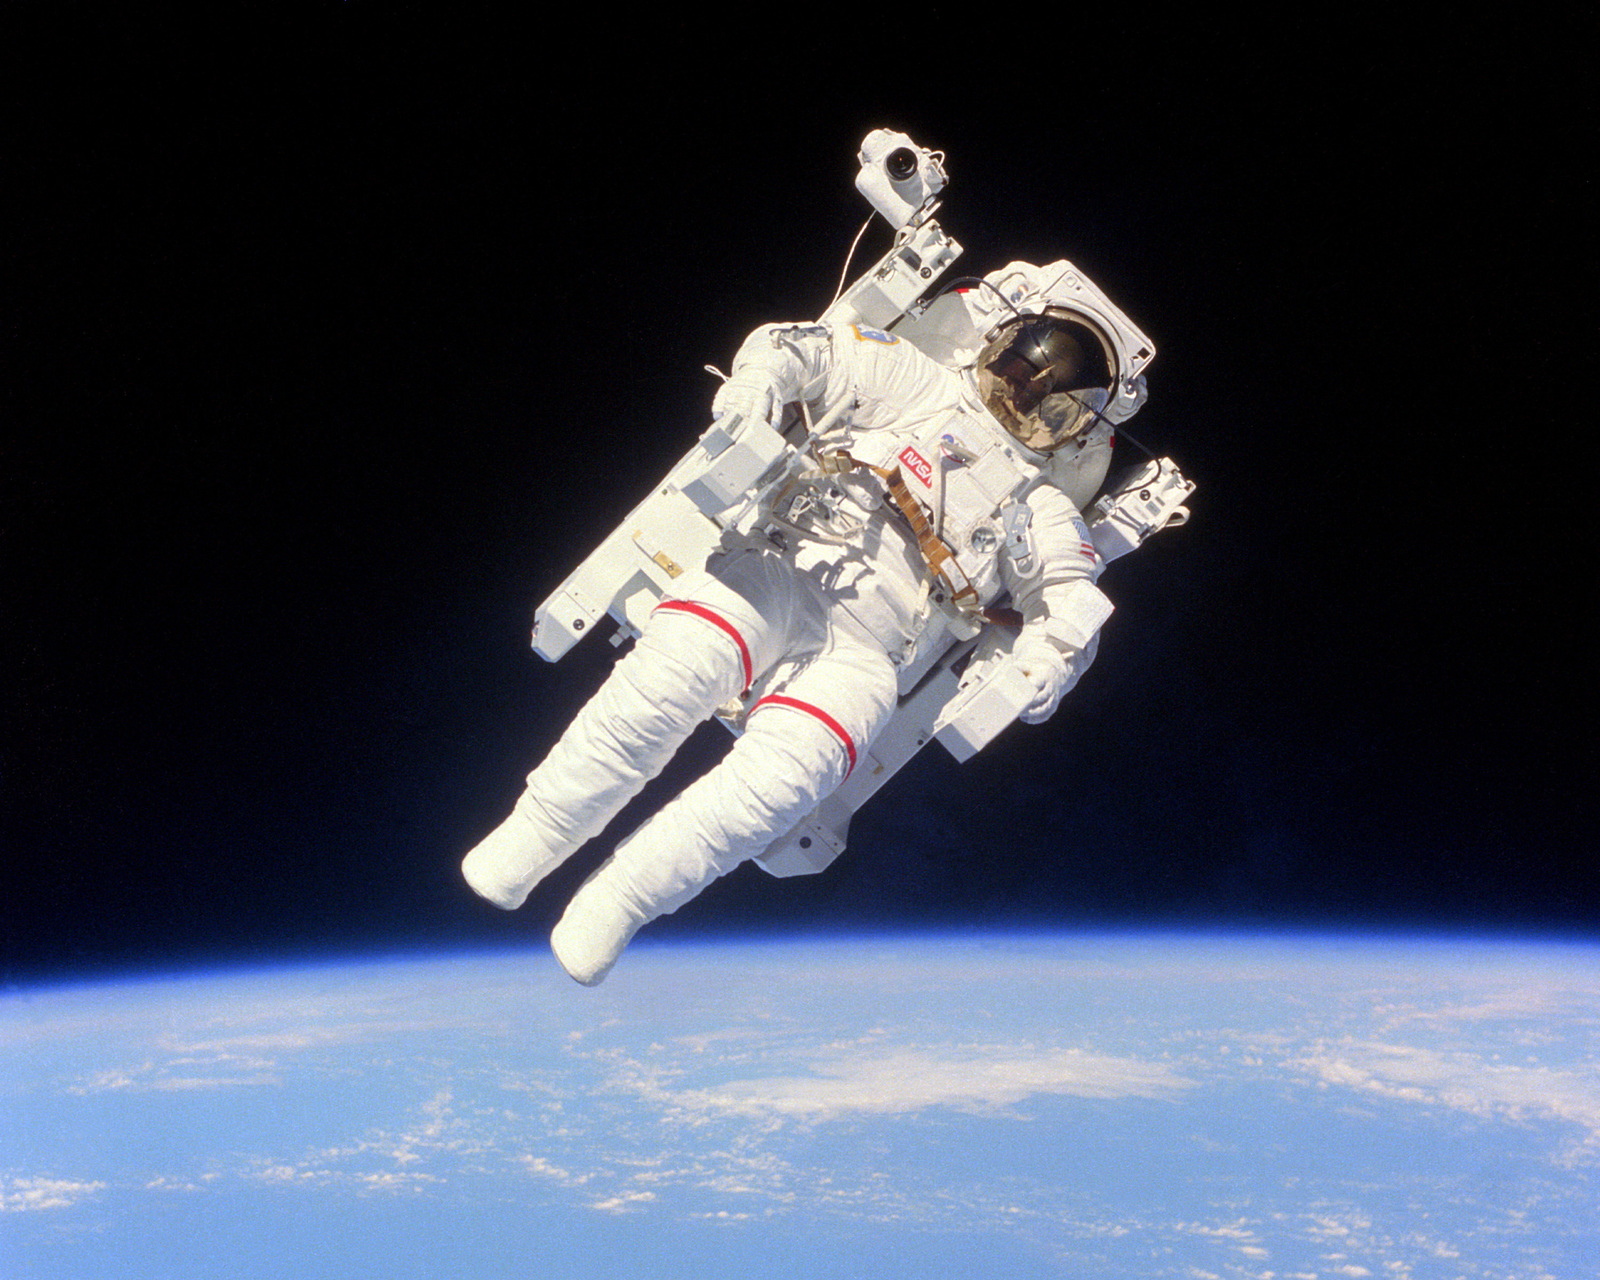 Astronaut Bruce McCandless II floats a few meters away from the cabin of the earth-orbiting Space Shuttle Challenger as part of an historic Extravehicular Activity (EVA) during Flight 41-B. This is the first use of the nitrogen-propelled, hand-controlled device called the Manned Maneuvering Unit (MMU), which allows astronauts to move freely in space without a tether